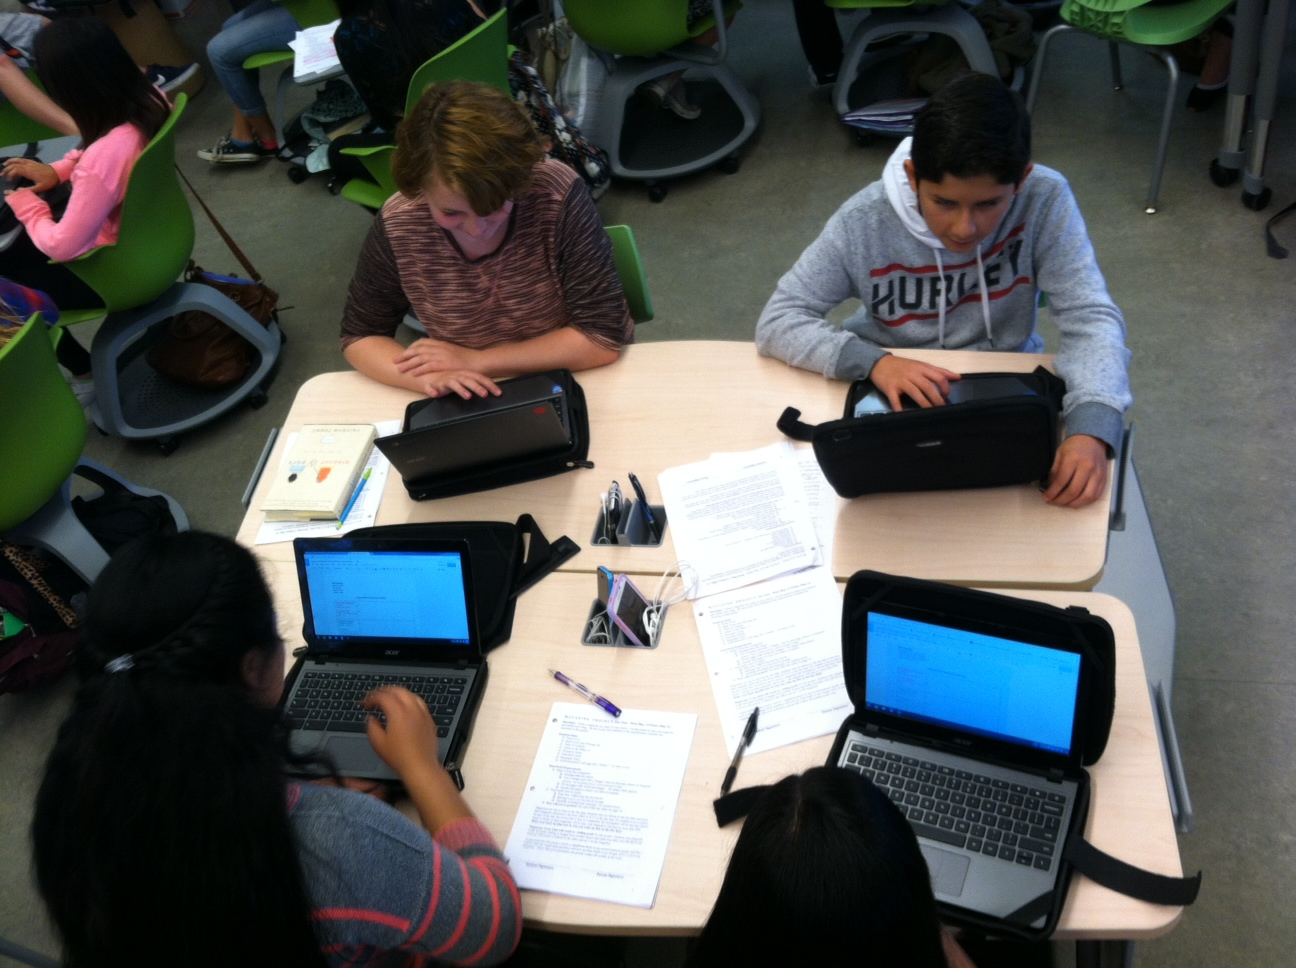 Students working together in stationary chairs